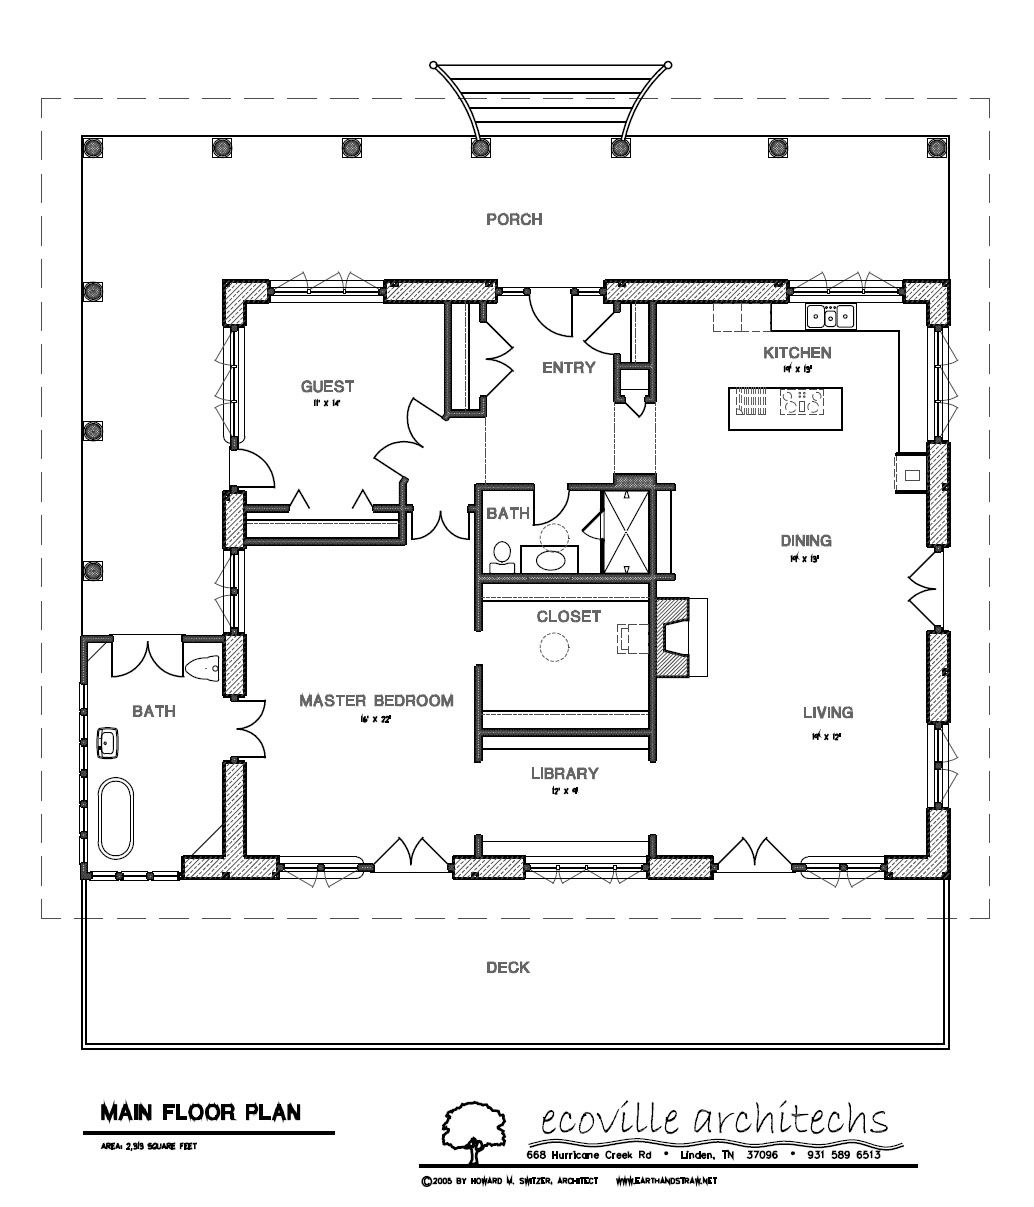 images about house plans on Pinterest   House plans  Floor       images about house plans on Pinterest   House plans  Floor Plans and Retirement House Plans